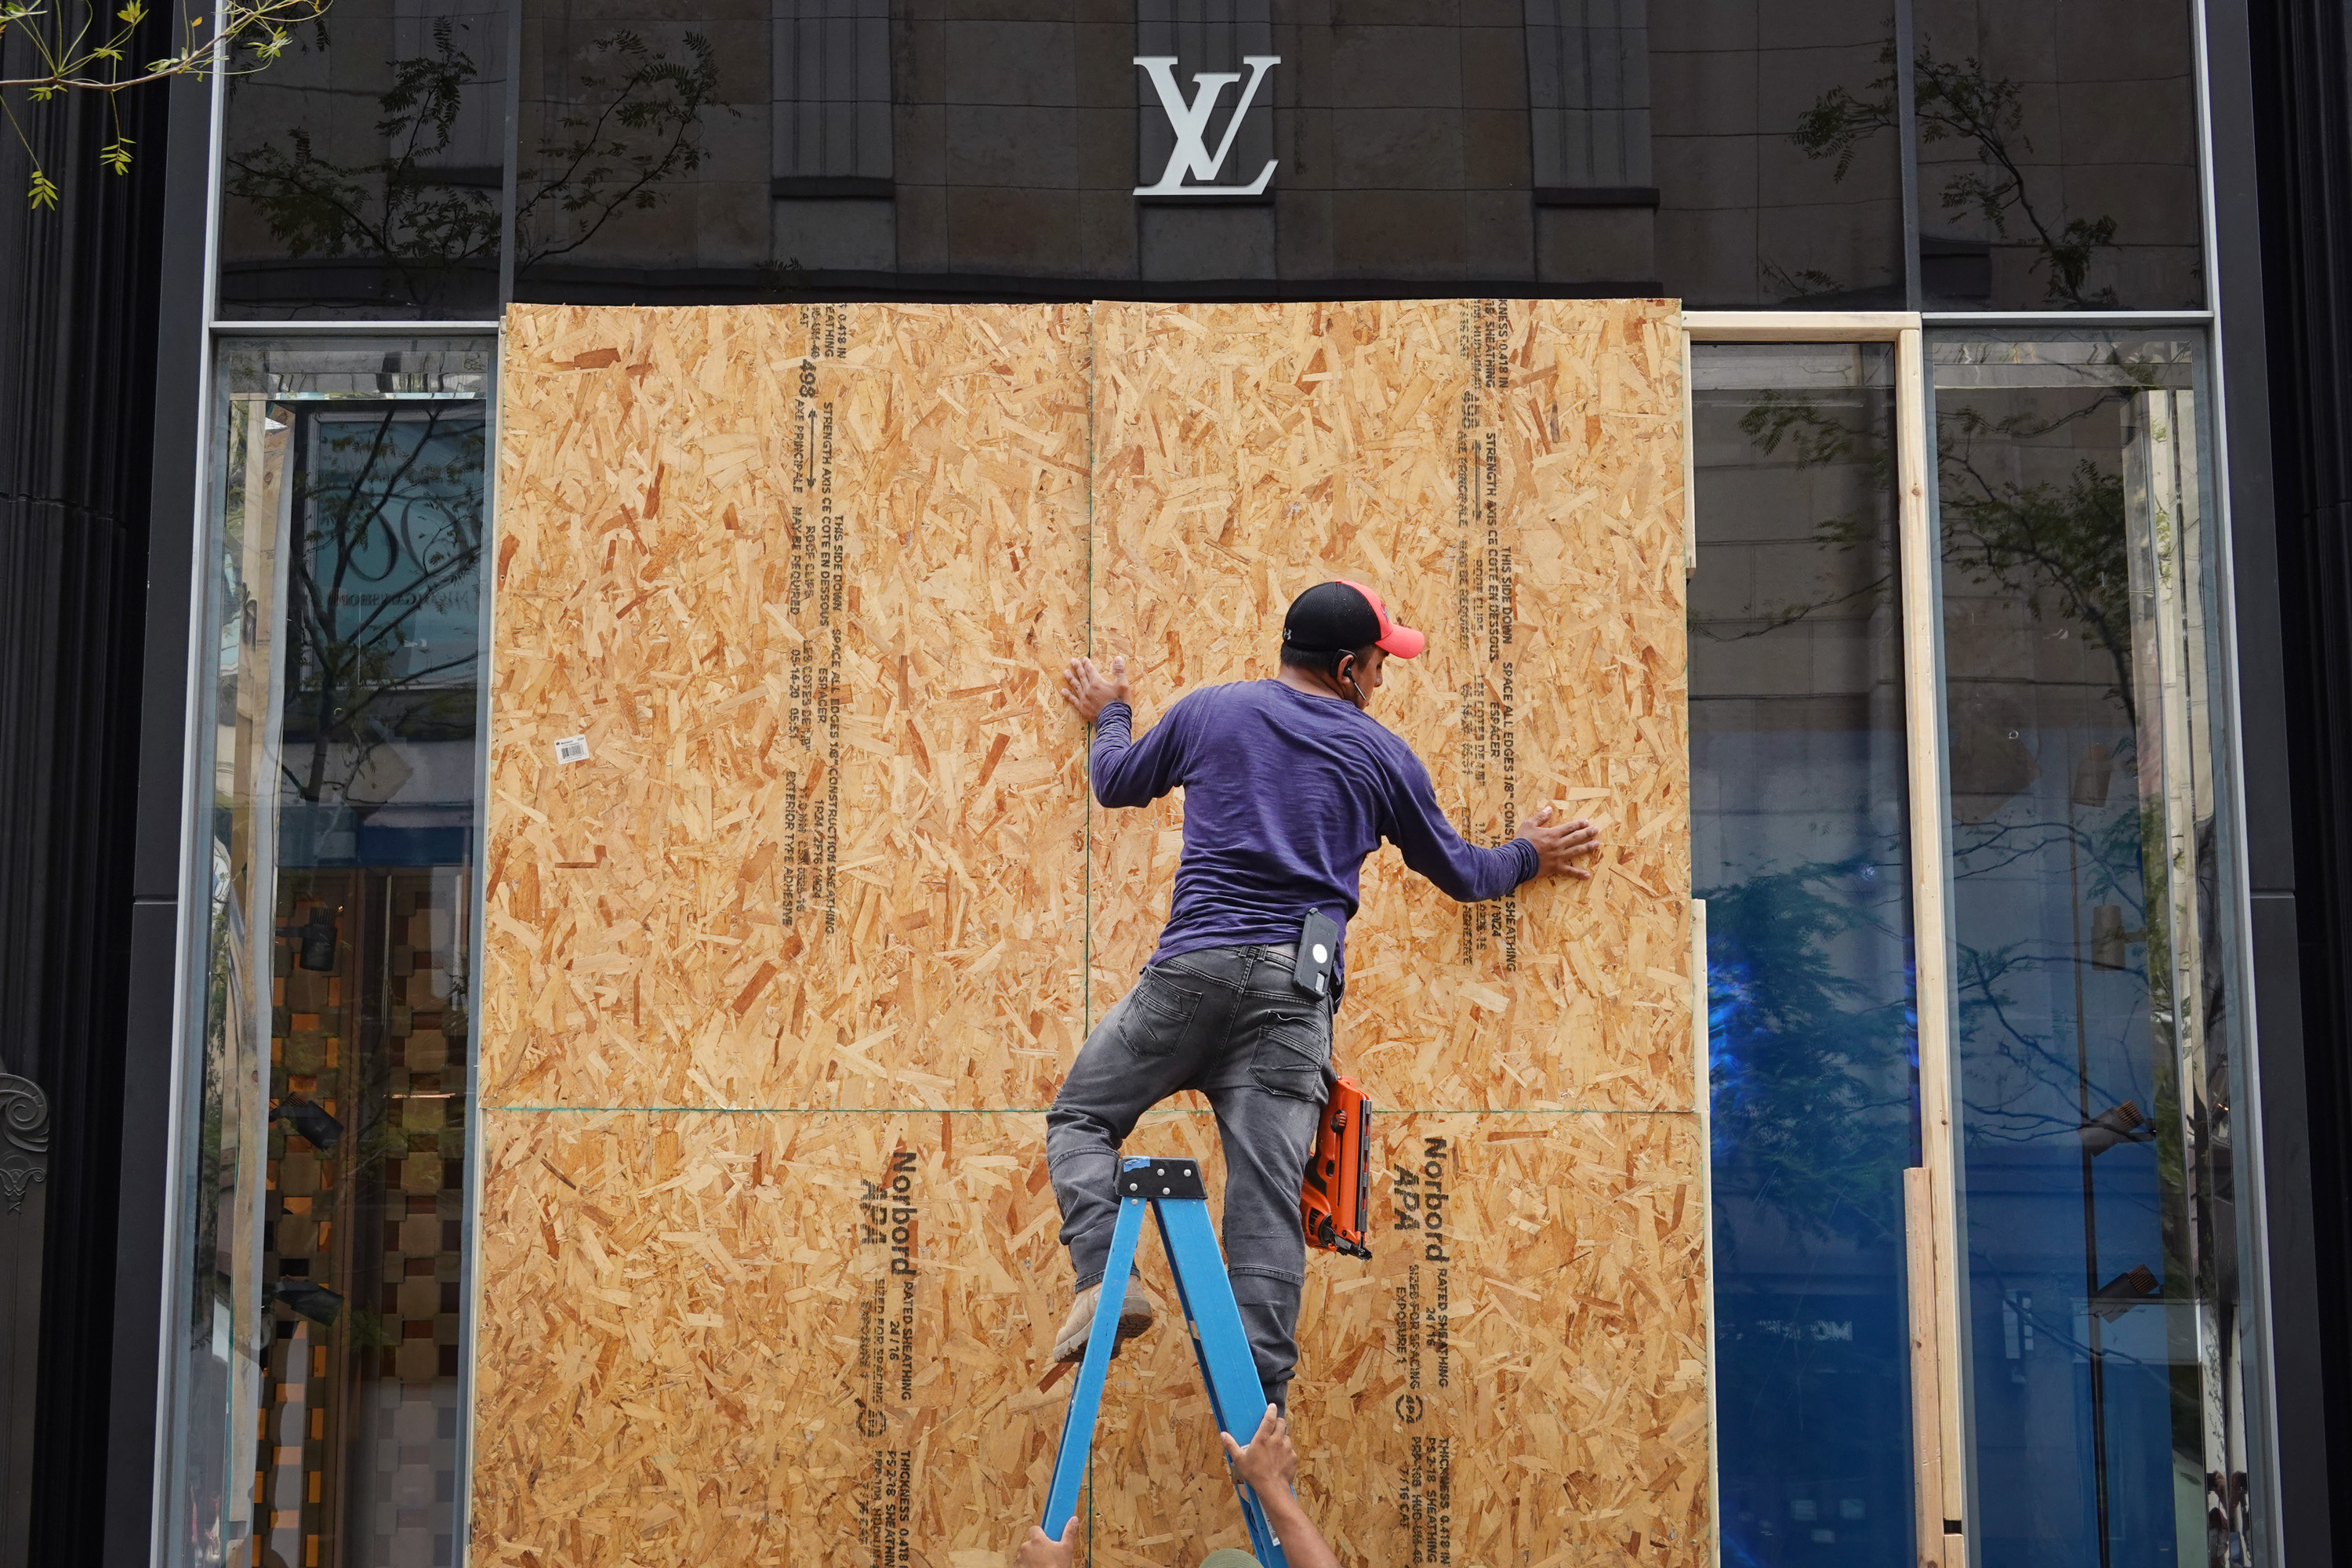 Workers make repairs to the Louis Vuitton store after it was looted on August 10, 2020 in Chicago, Illinois. Police made more than 100 arrests during the night as widespread looting and disorderly conduct was reported downtown and other areas of the city. Officials believe the violence had apparently grown out of a shoot out between police and a suspect. (Photo by Scott Olson/Getty Images)